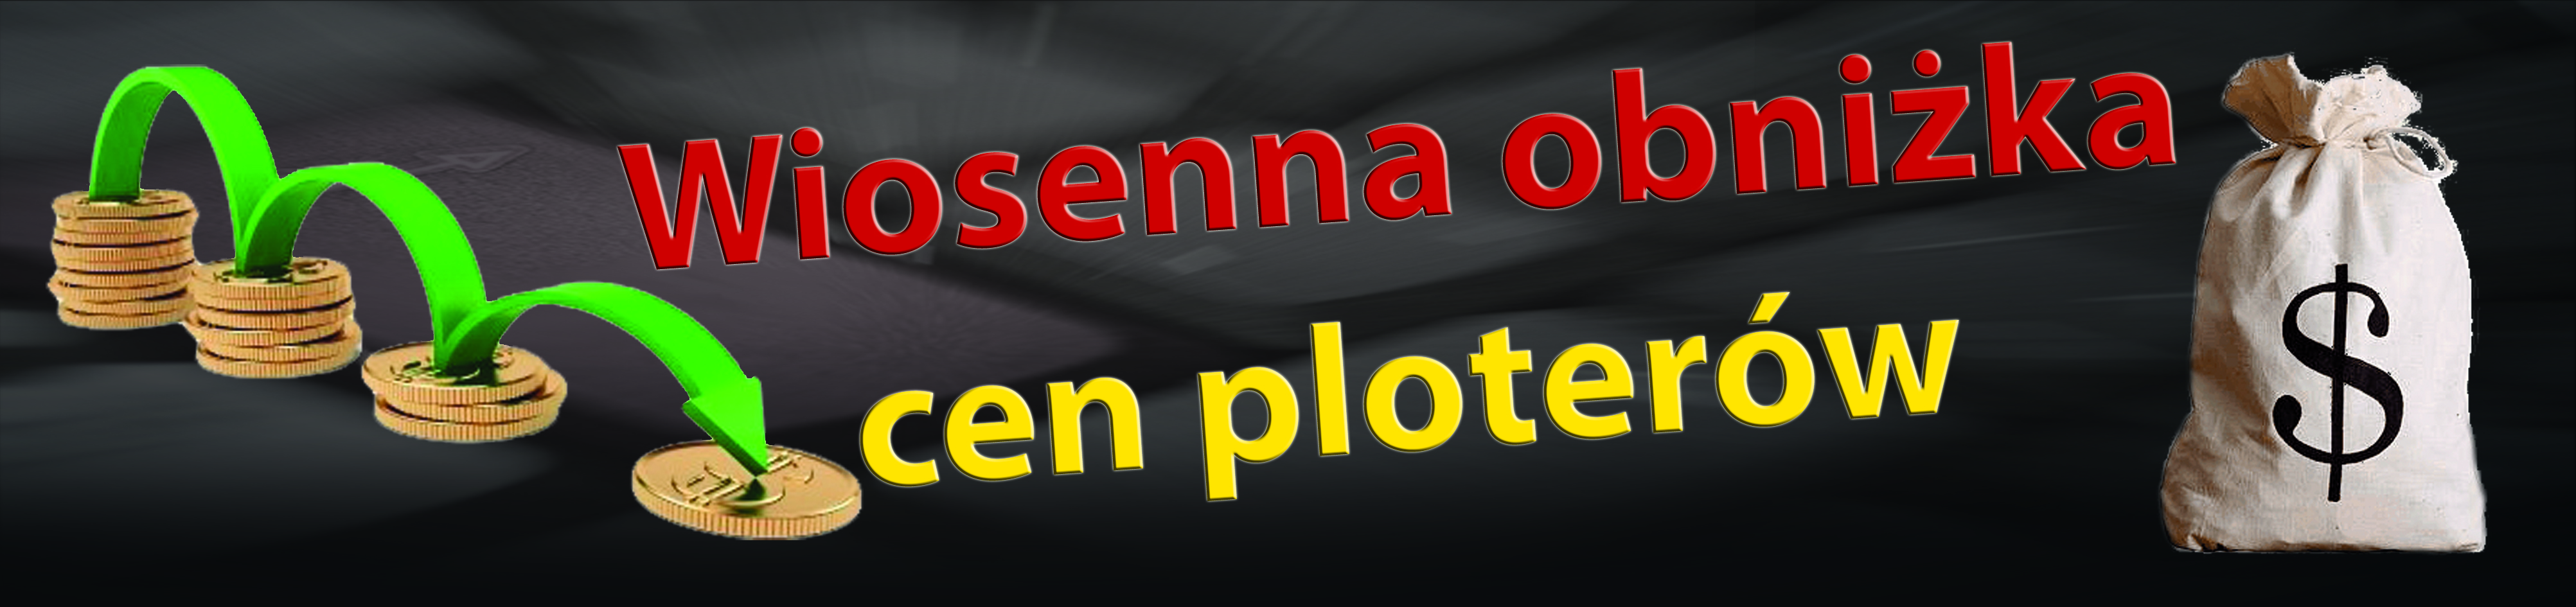 ploter solwentowy